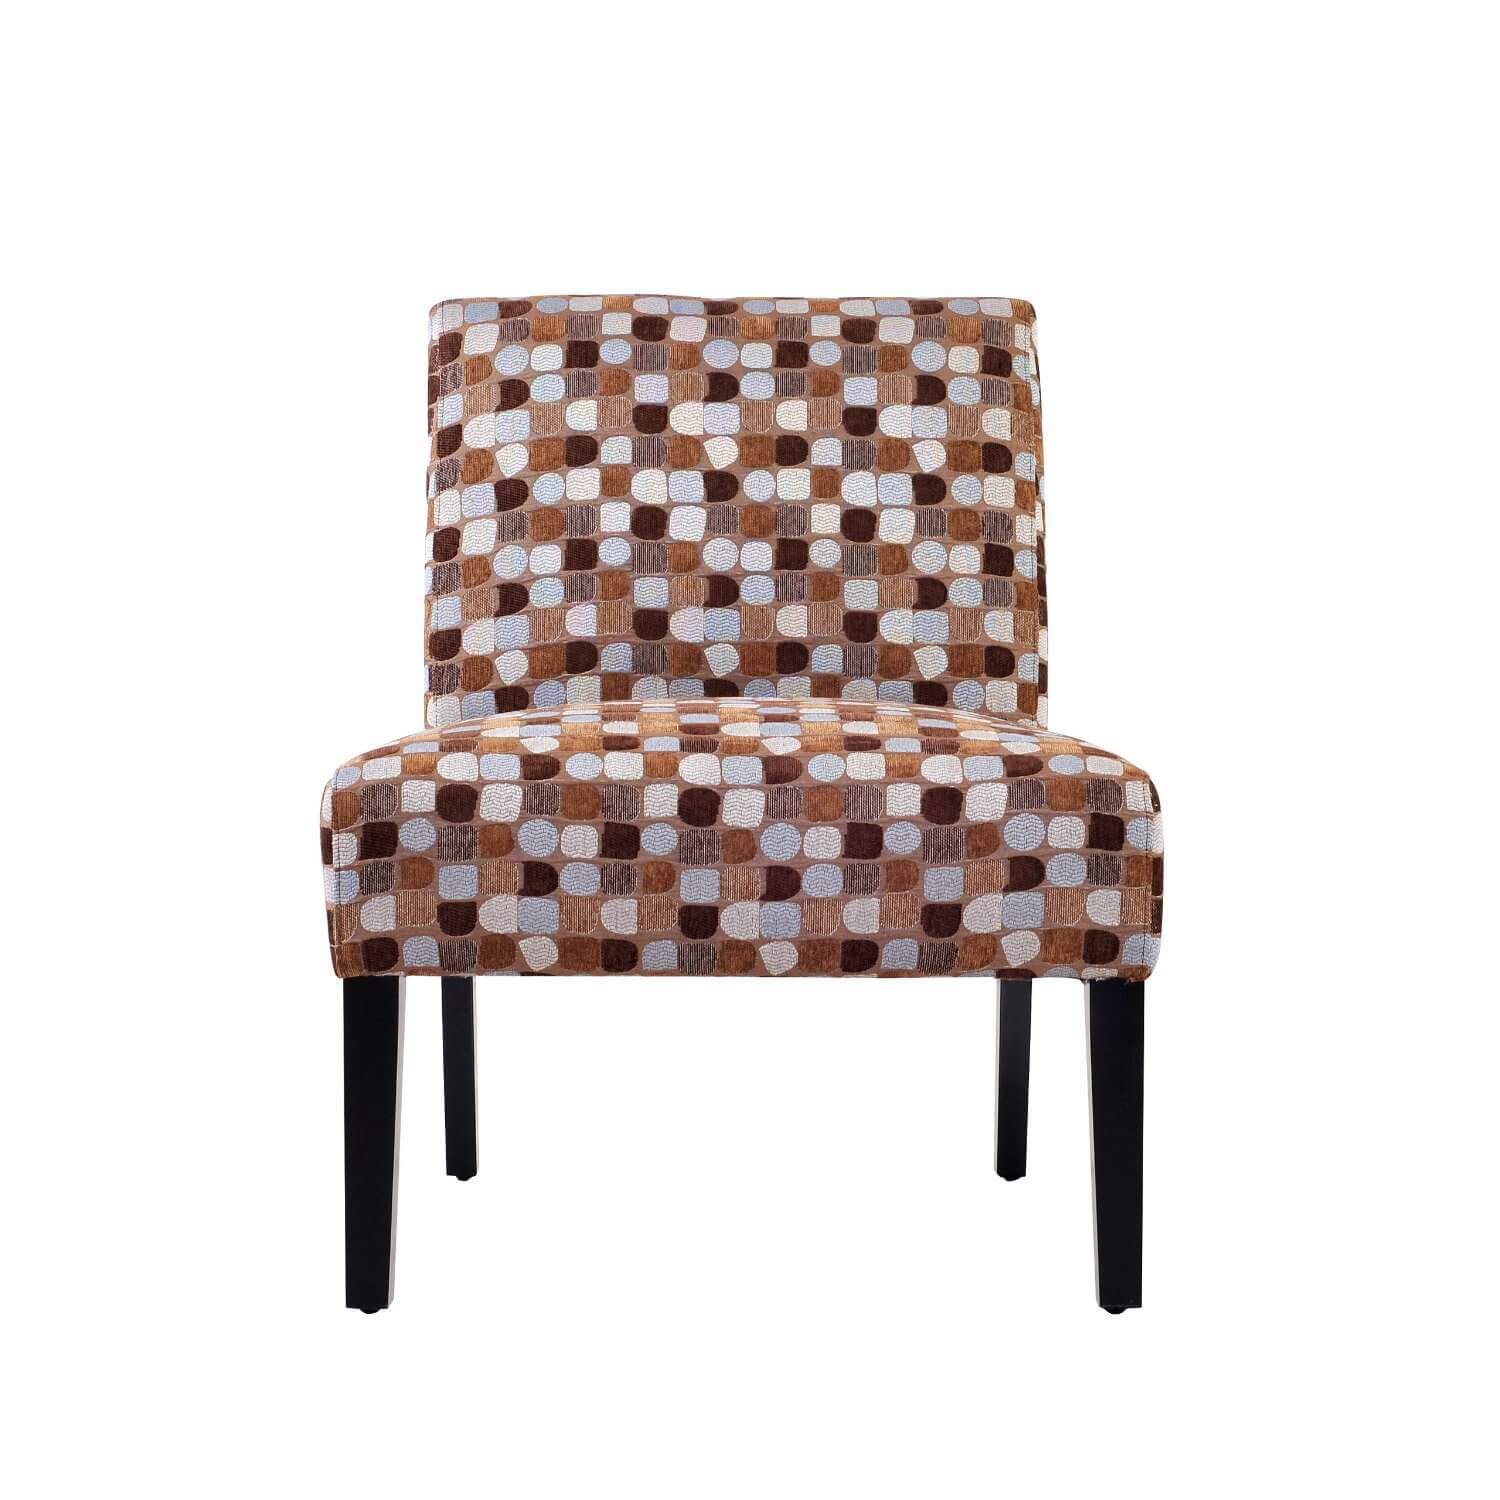 "This chair definitely lives up to its categorization as an ""accent chair."" It's a colorful pattern that with chocolate wood legs that would work well in any earth-tone dominant room"